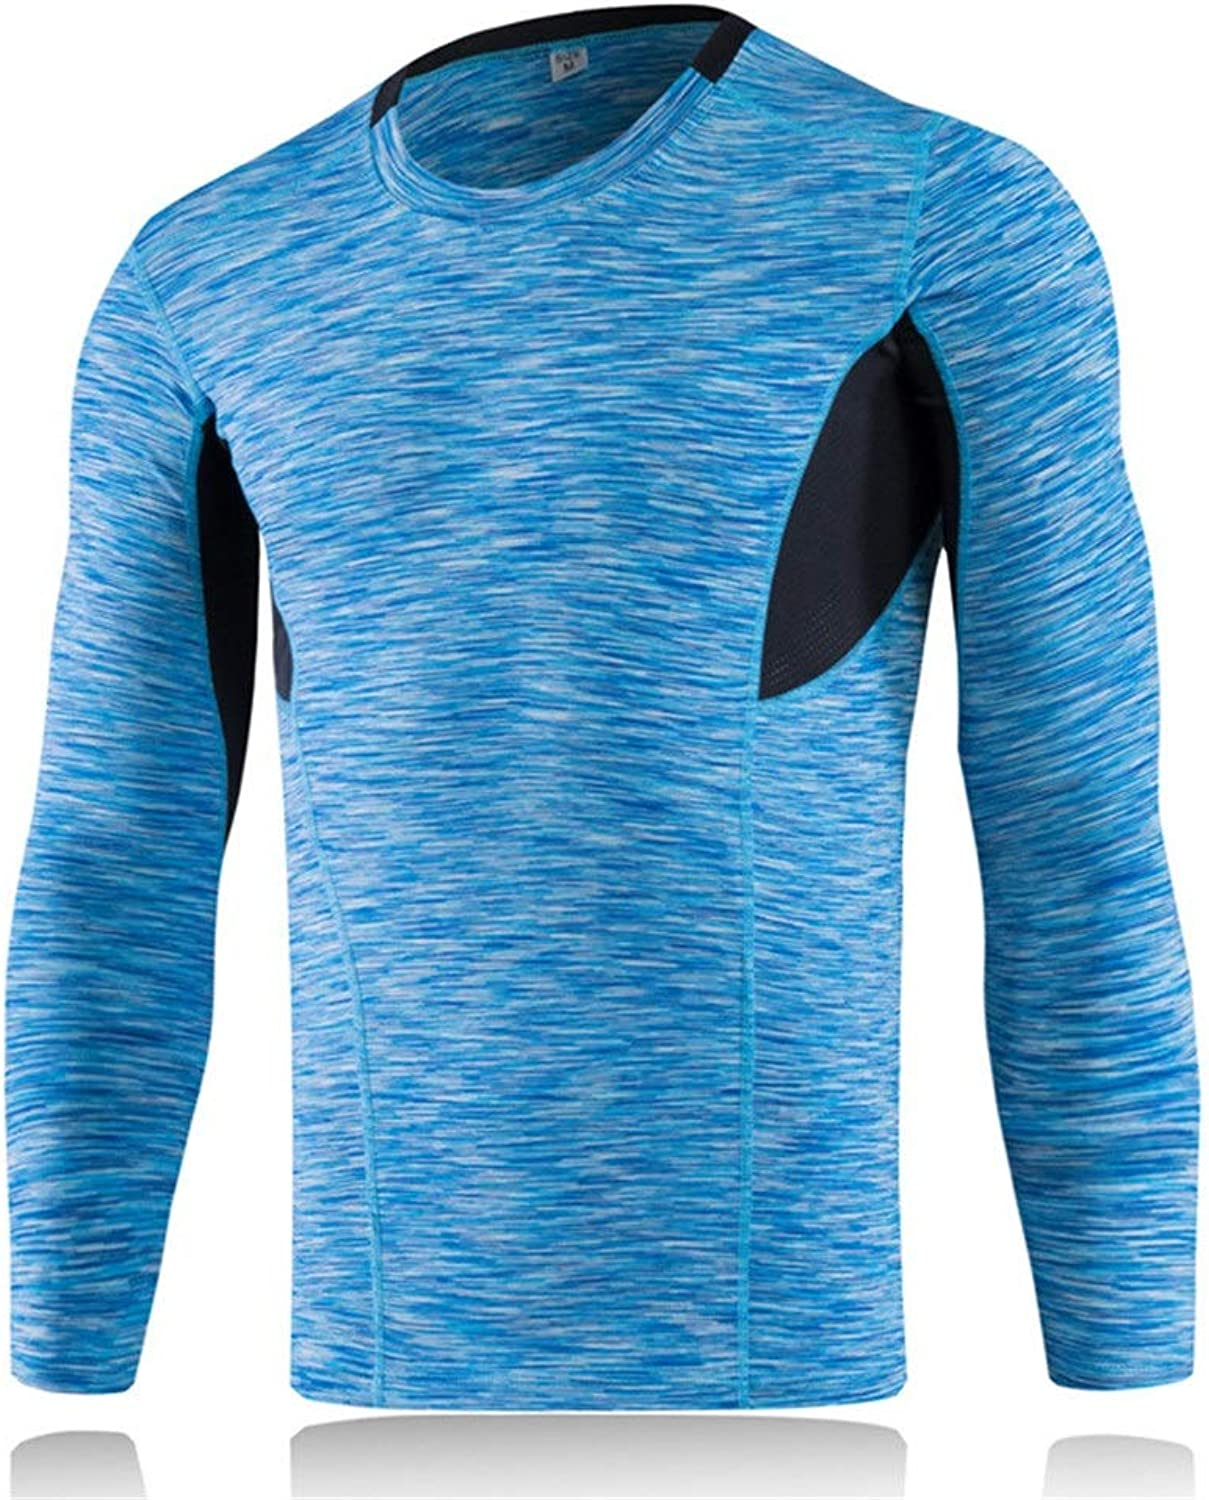 Men's Compression Base Layer Shirt Men's Compression Sportswear,Men's Thermal Compression Long Sleeve Tops,Sports Long Sleev,Men's Compression Sportswear (color   colorful bluee, Size   M)